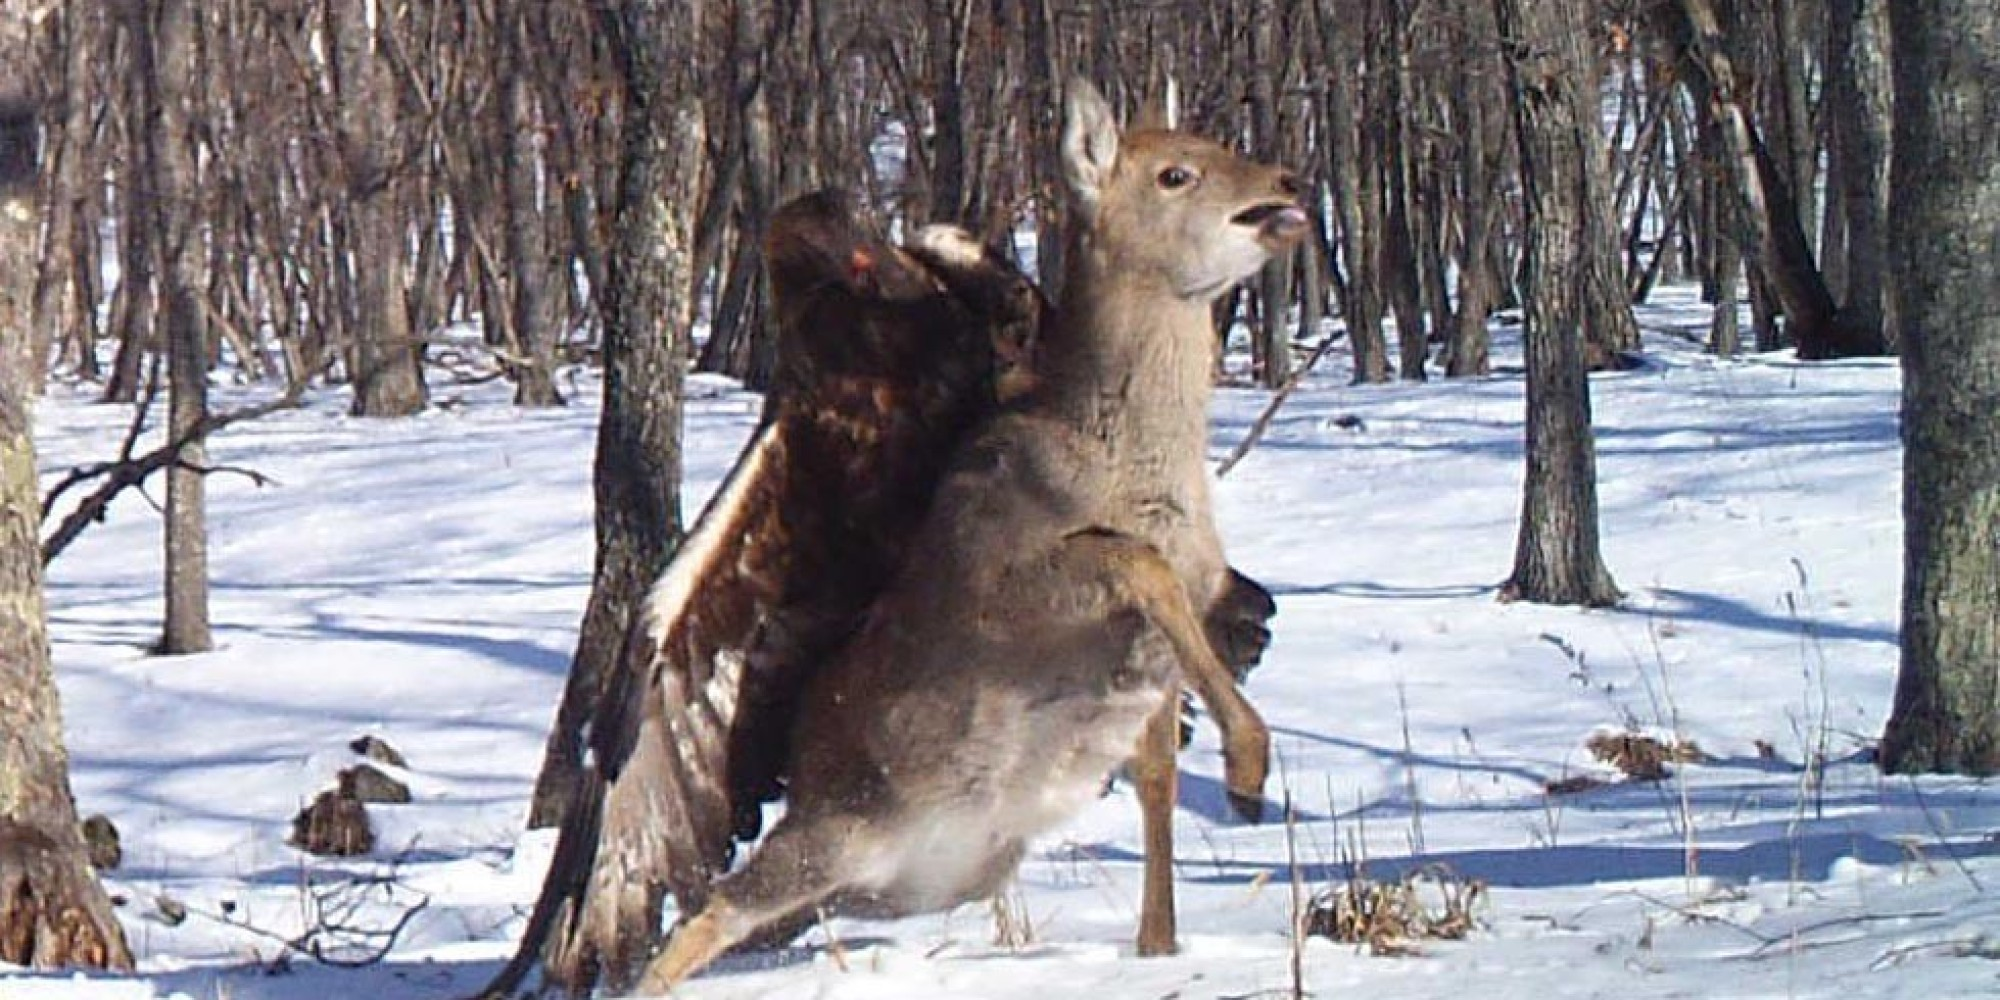 Eagle Attacking Deer In Russia Caught On Camera